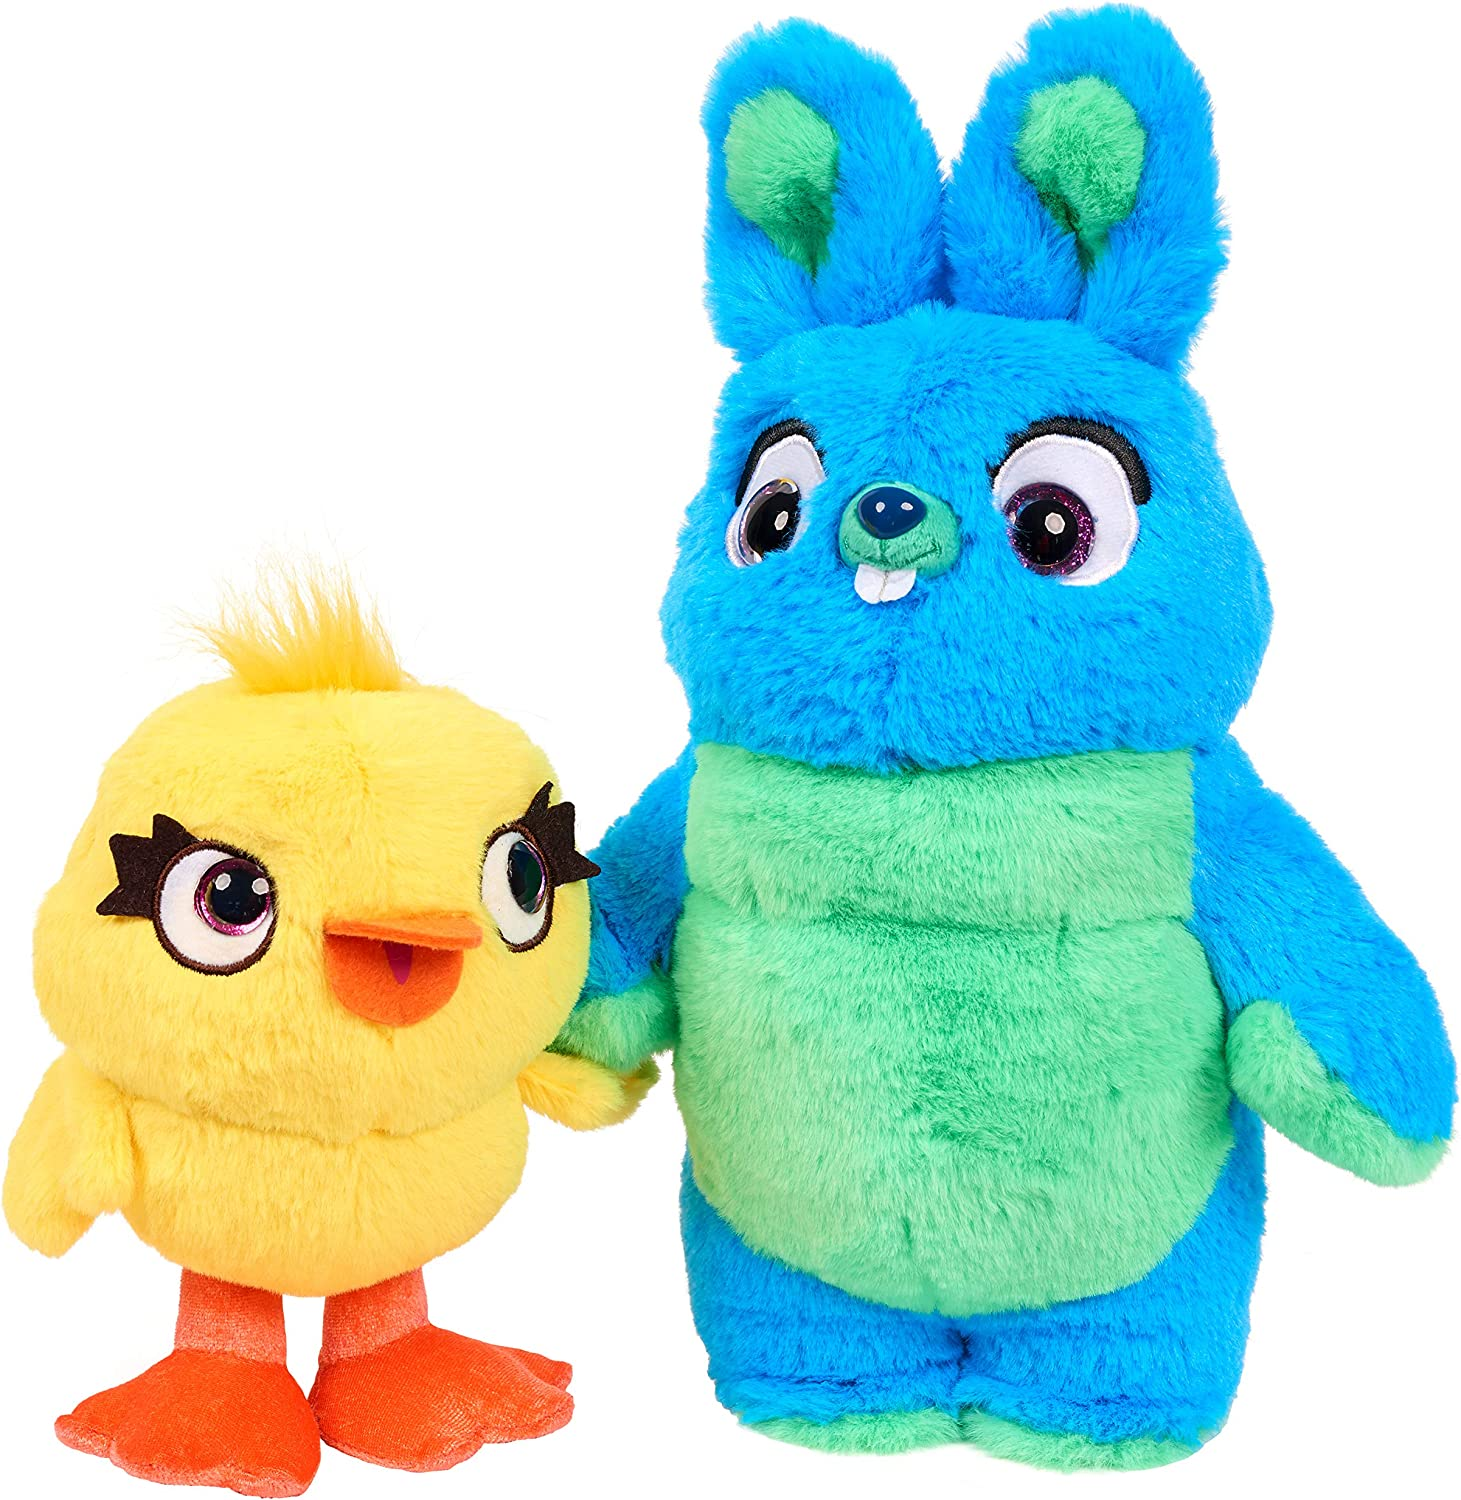 Disney-Pixar's Toy Story 4 Scented Friendship Plush Set - Ducky & Bunny